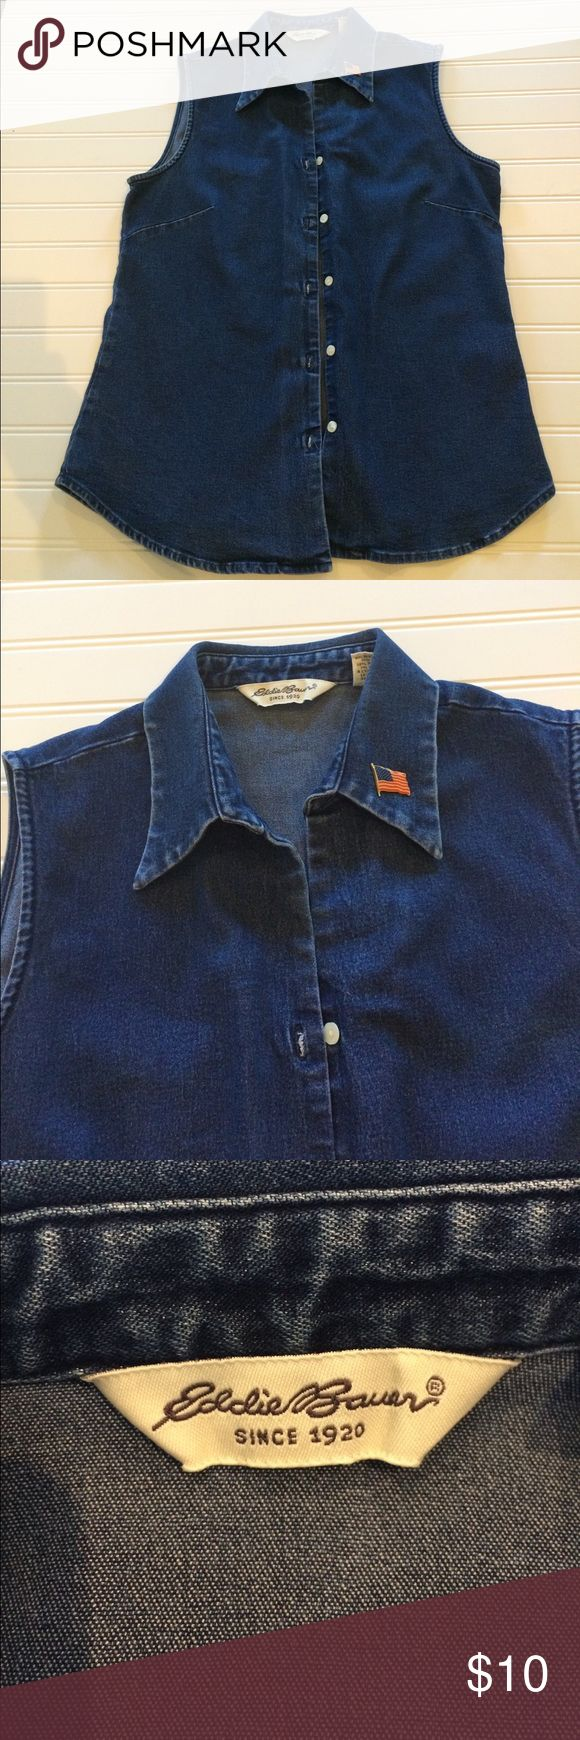 Eddie Bauer denim shirt EUC denim shirt, American flag pin will be included🇺🇸 Eddie Bauer Tops